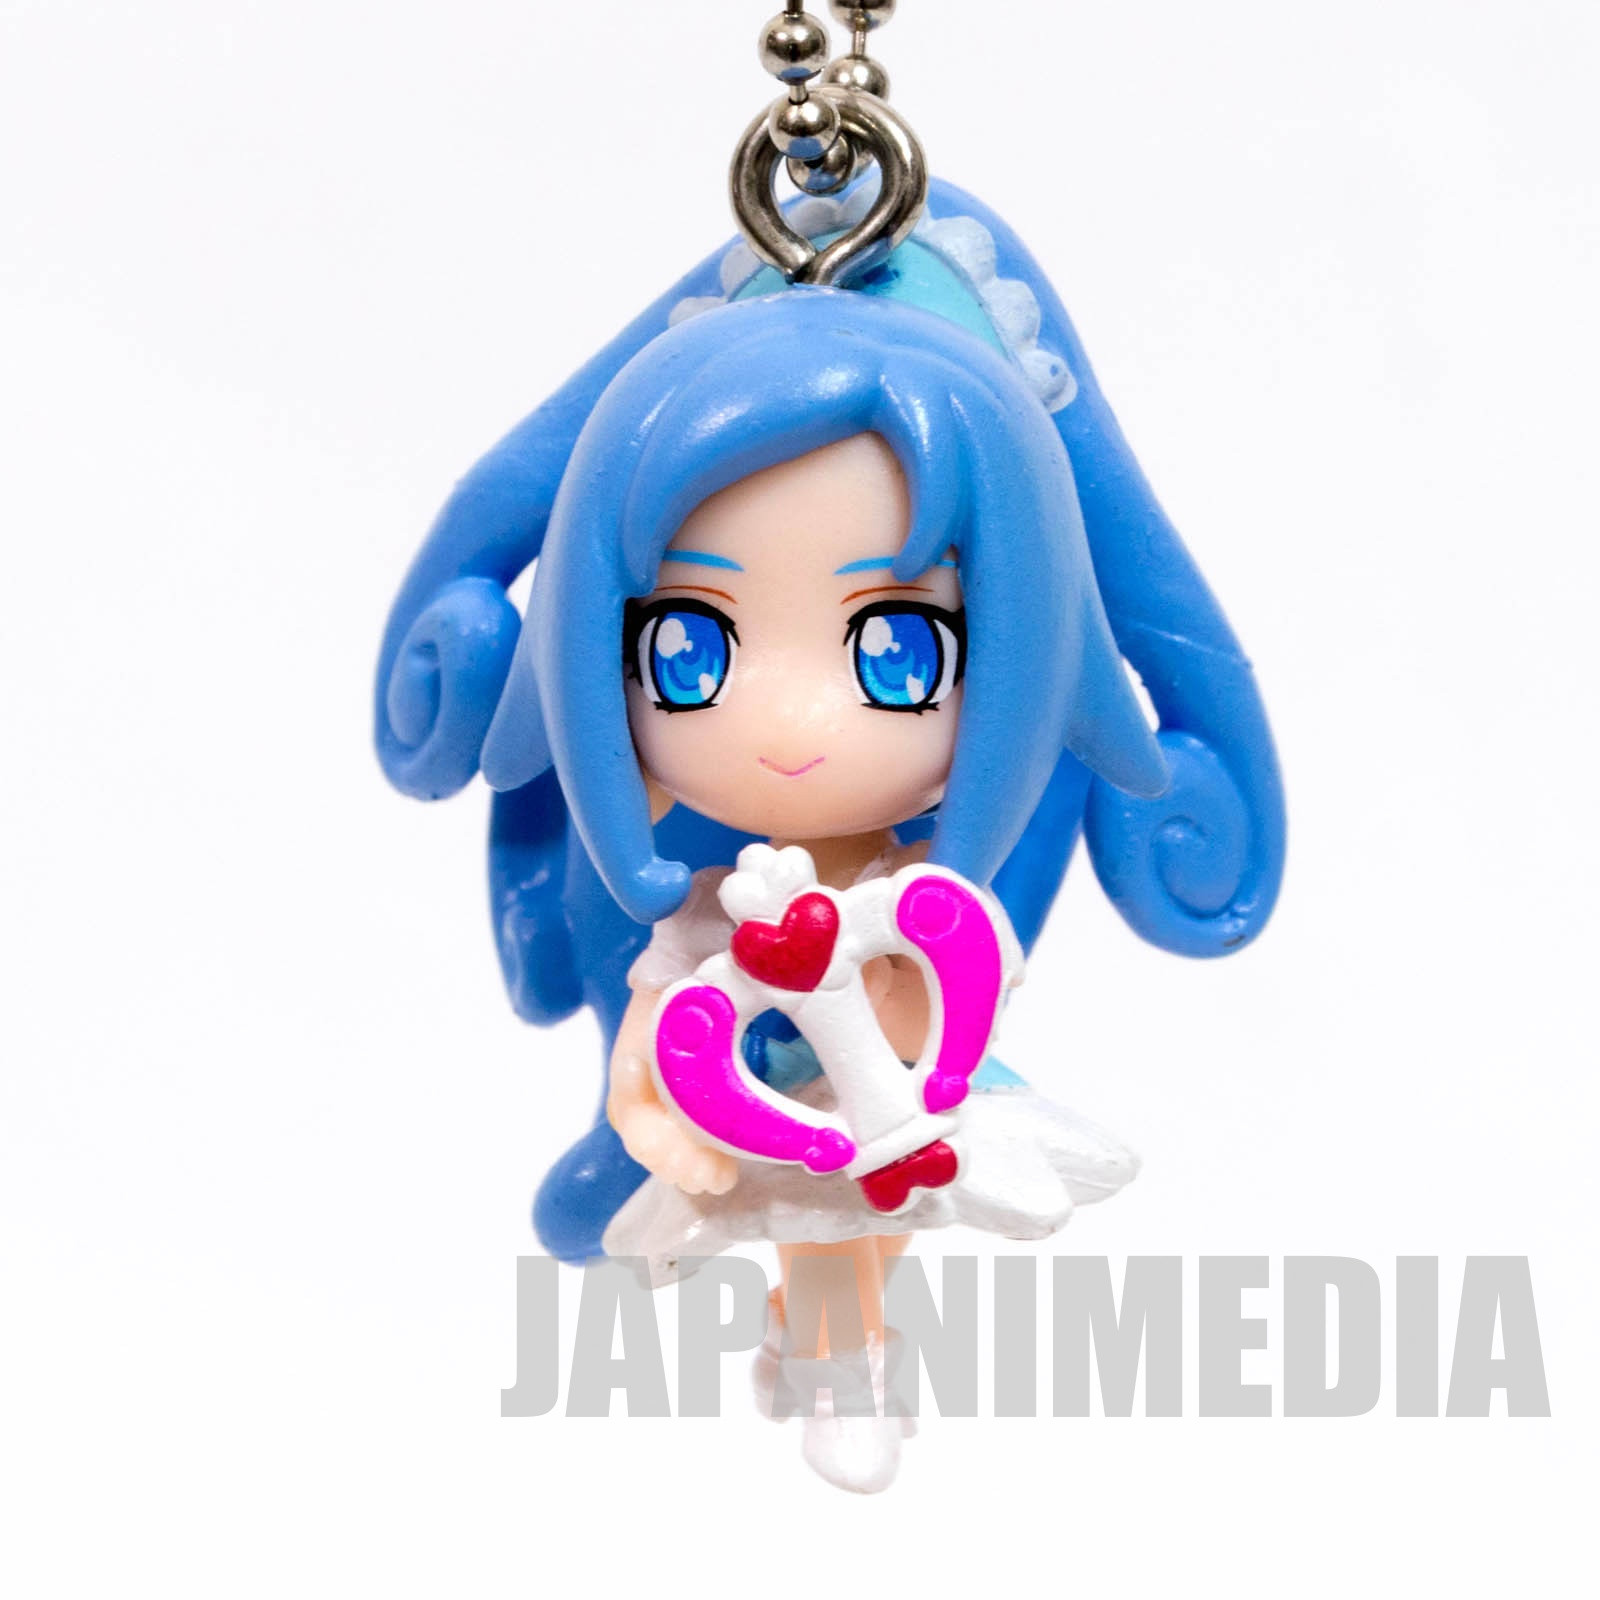 Doki Doki! PreCure Cure Diamond Doki Doki Precure swing Mascot Figure Ball Keychain JAPAN ANIME